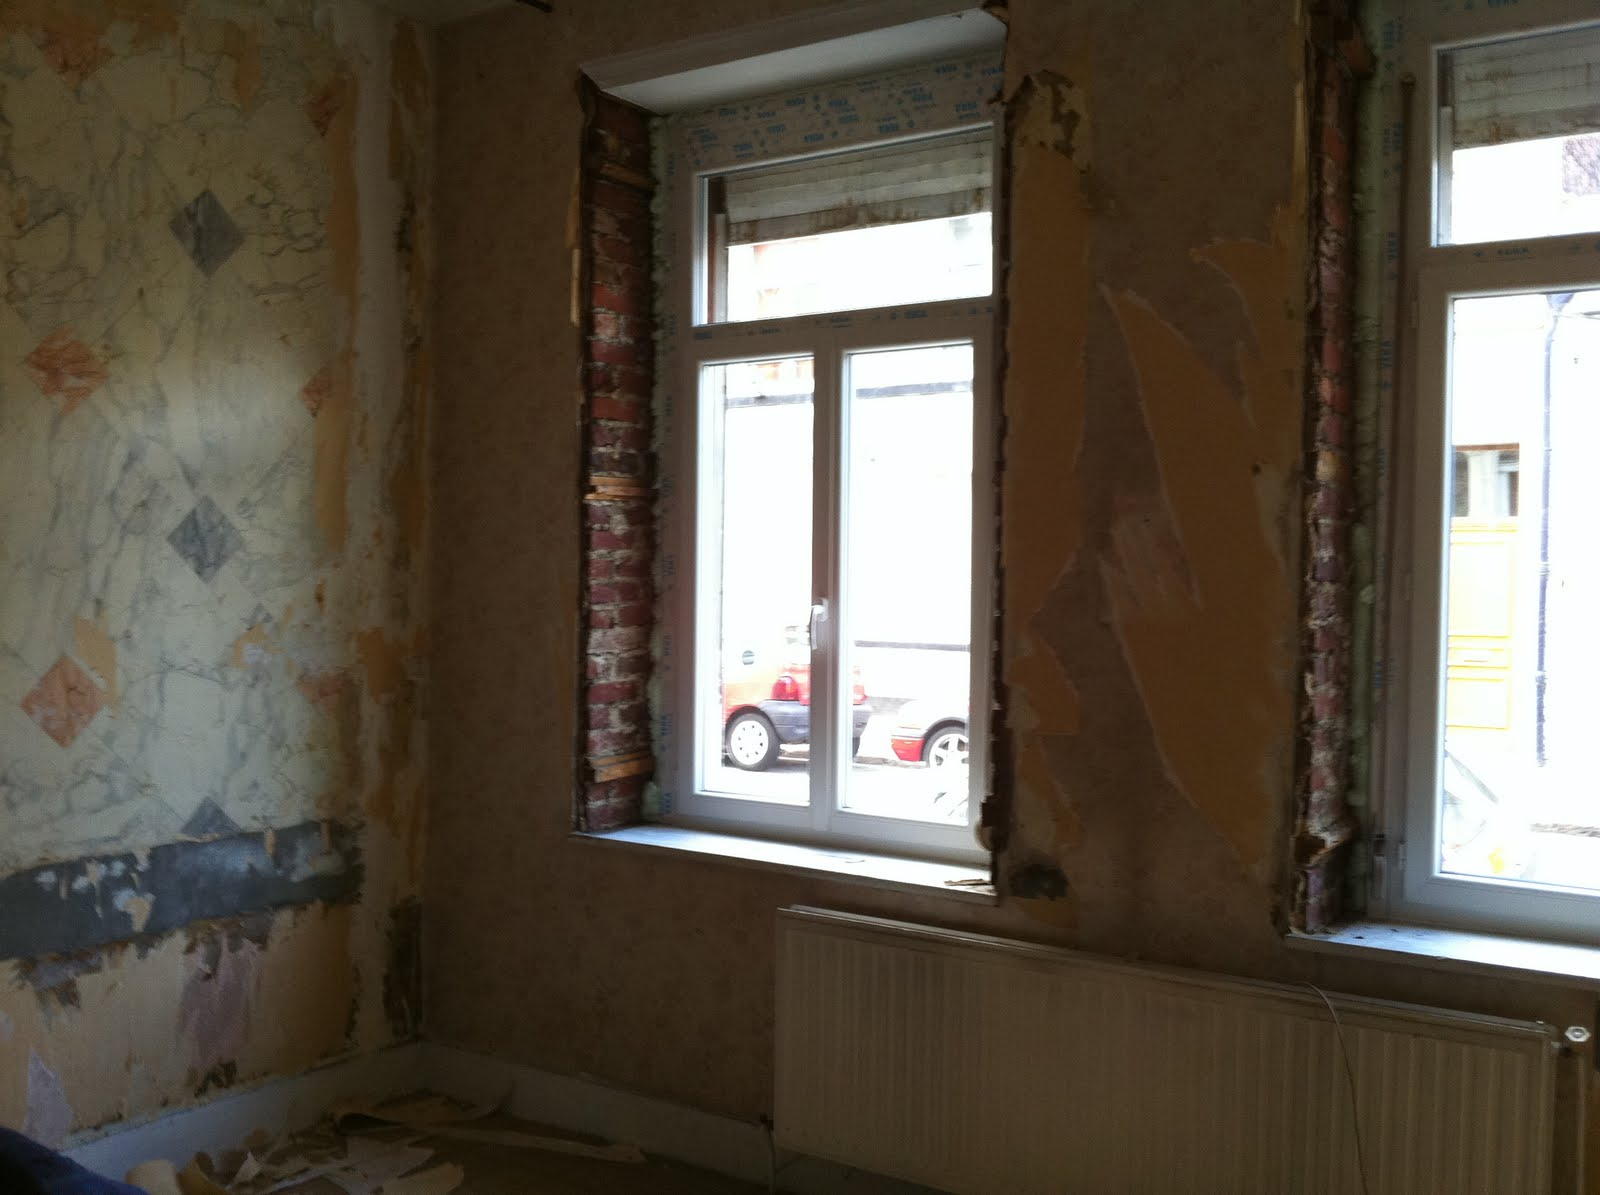 Ocordo travaux nord for 82 rue brule maison lille